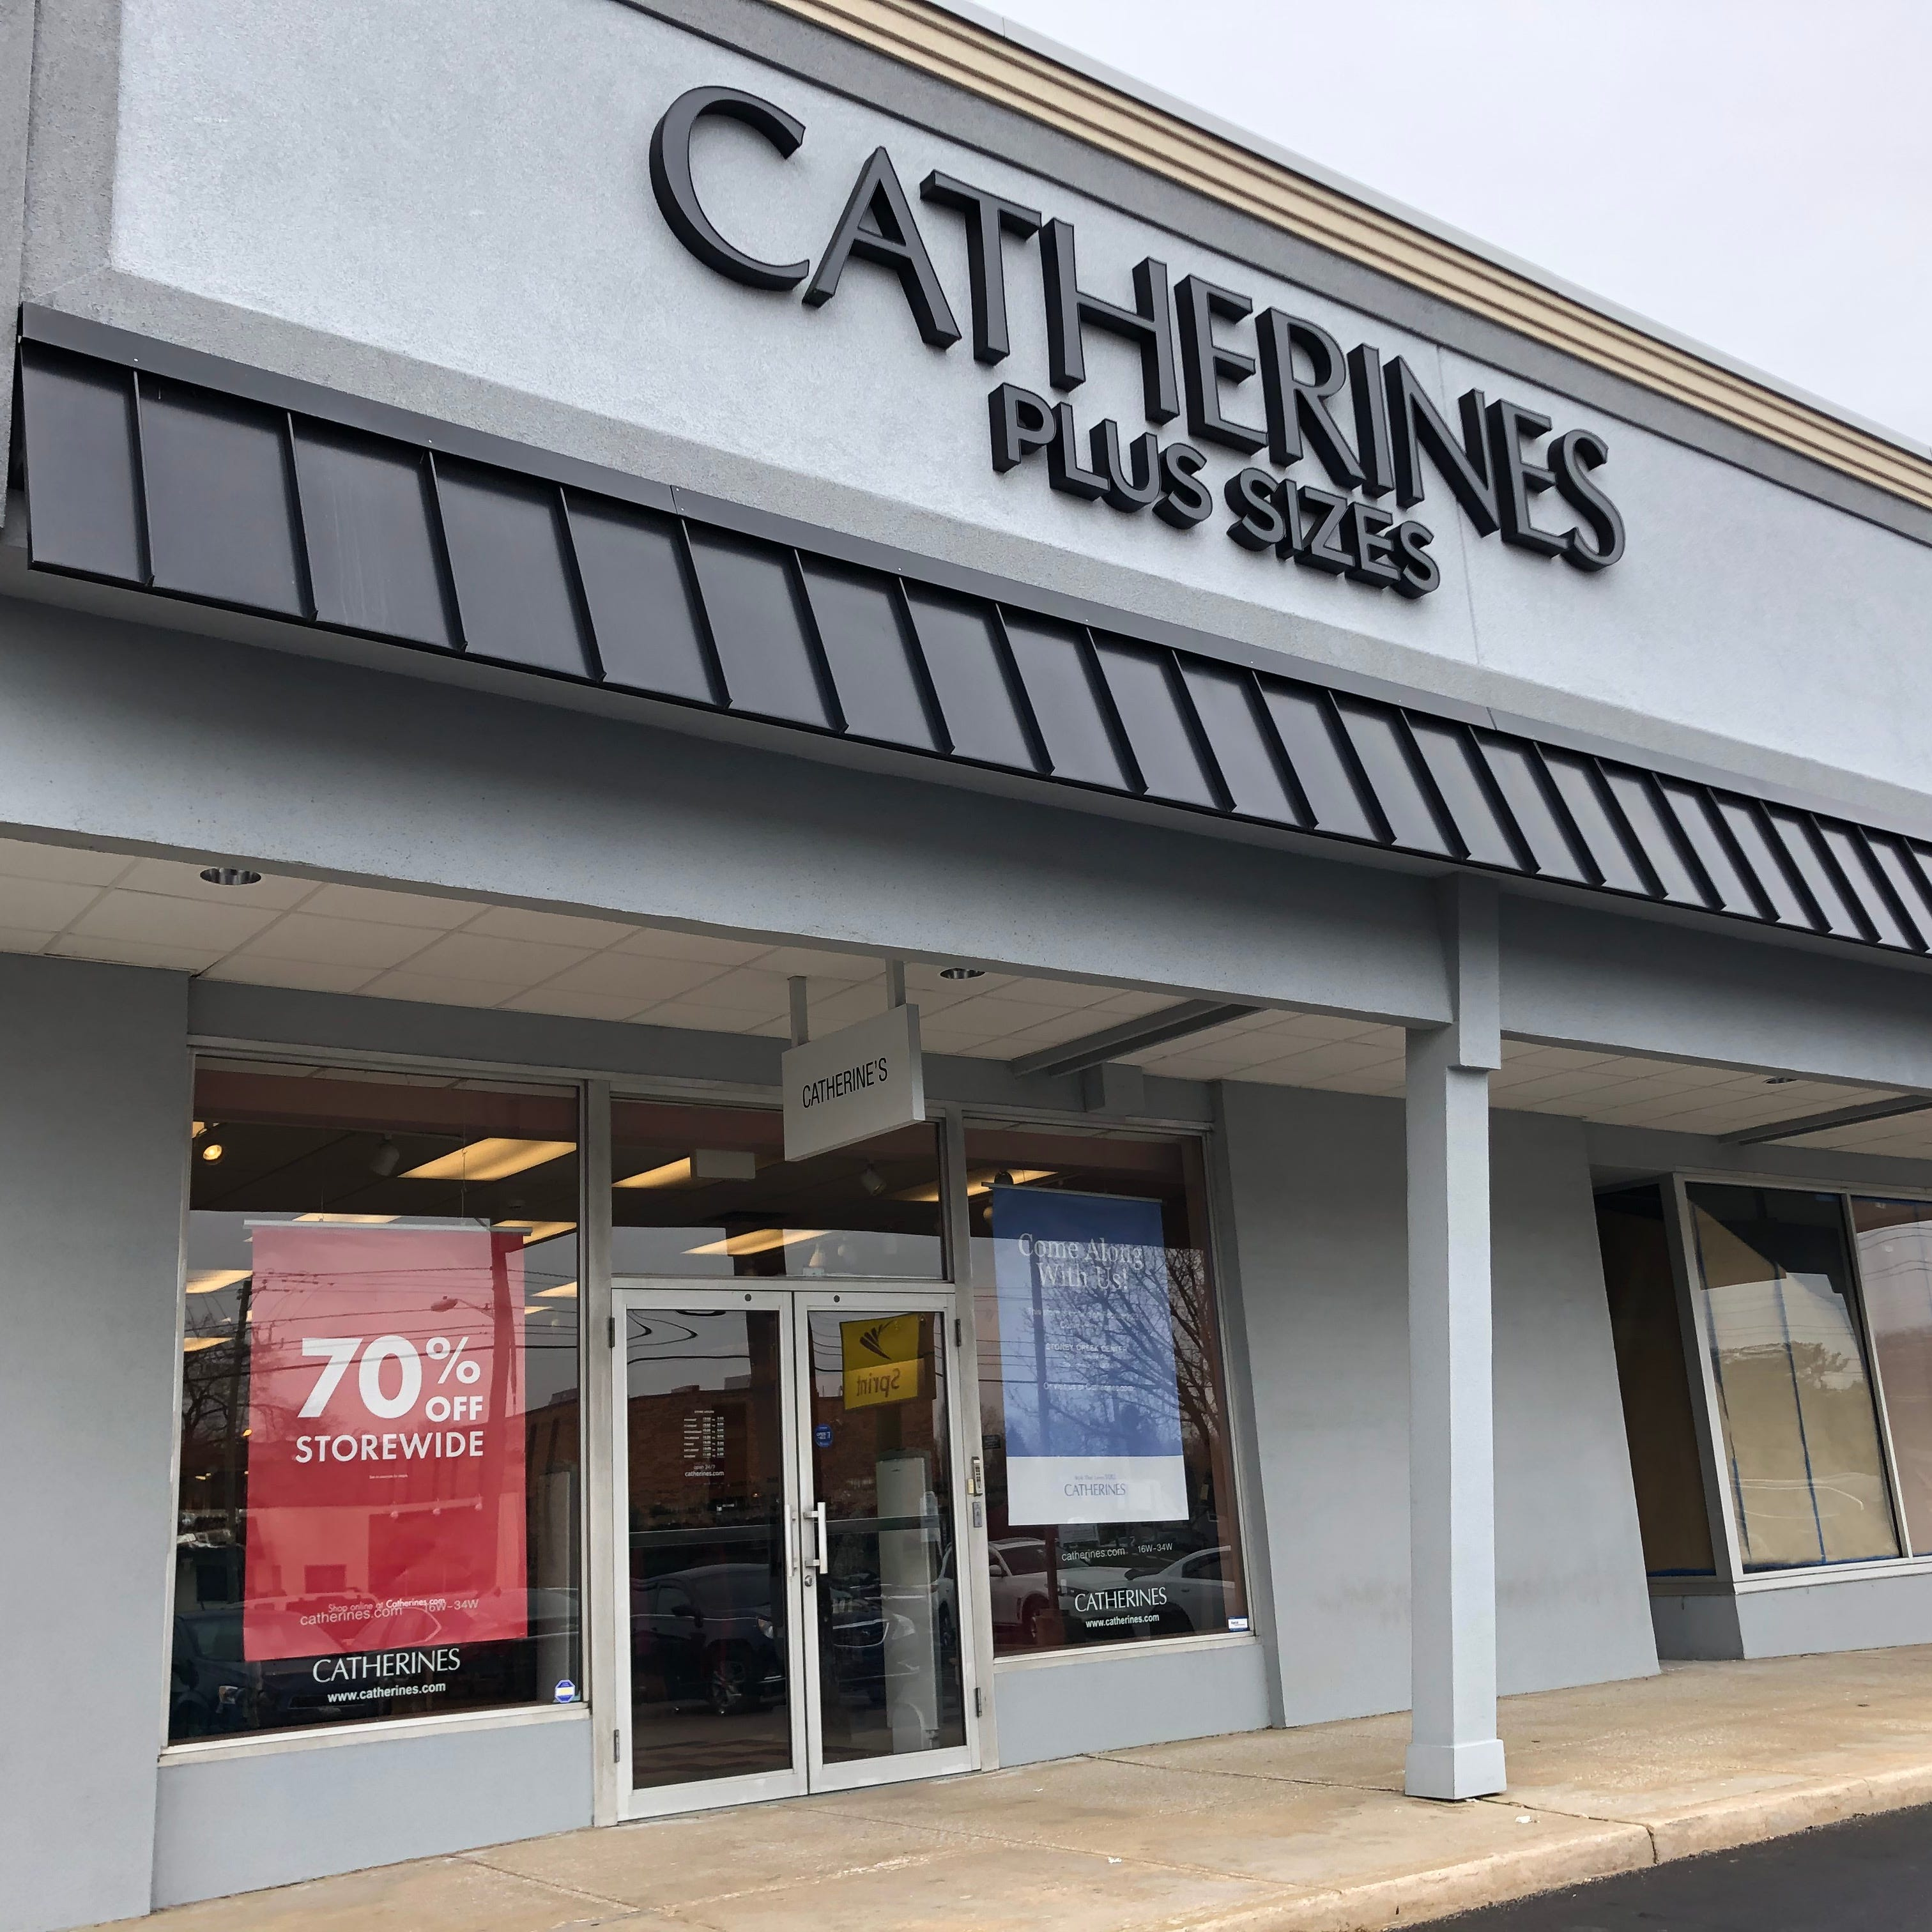 catherines stores closings 2020 all stores to close in bankruptcy catherines stores closings 2020 all